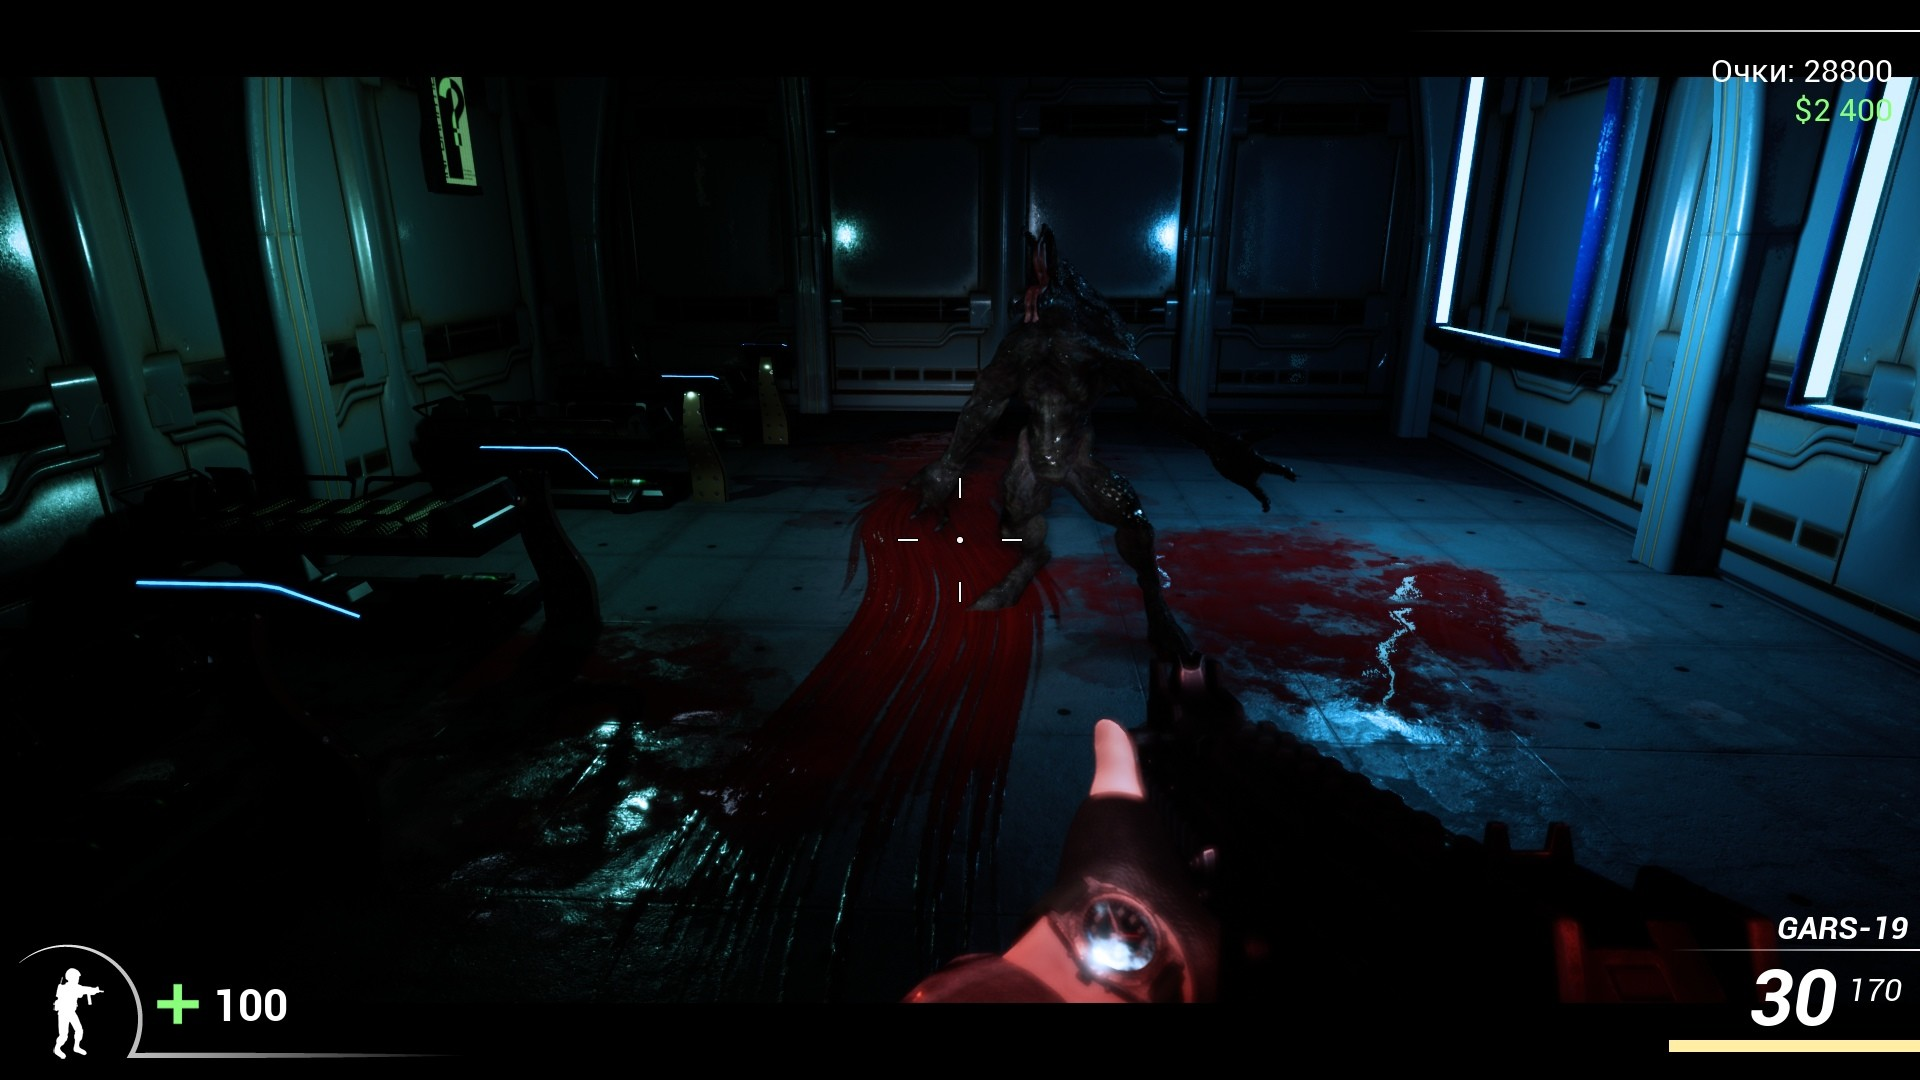 DooM in the Dark 2 screenshot